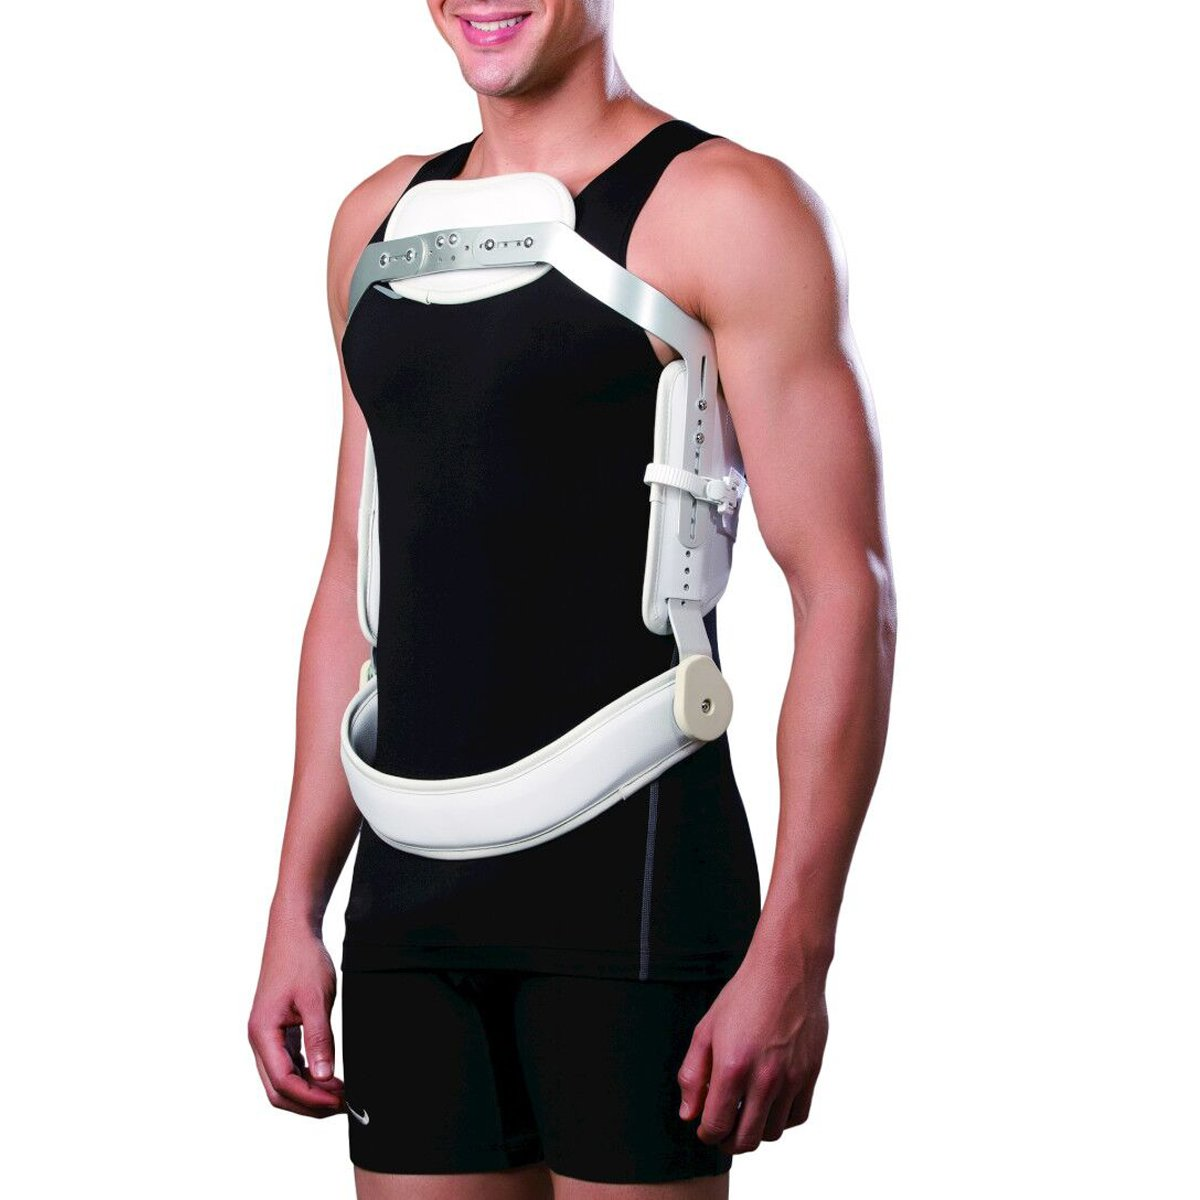 Hyperextension Back Brace Orthosis Immobilization After Surgical stabilization of thoracolumbar fractures (S)